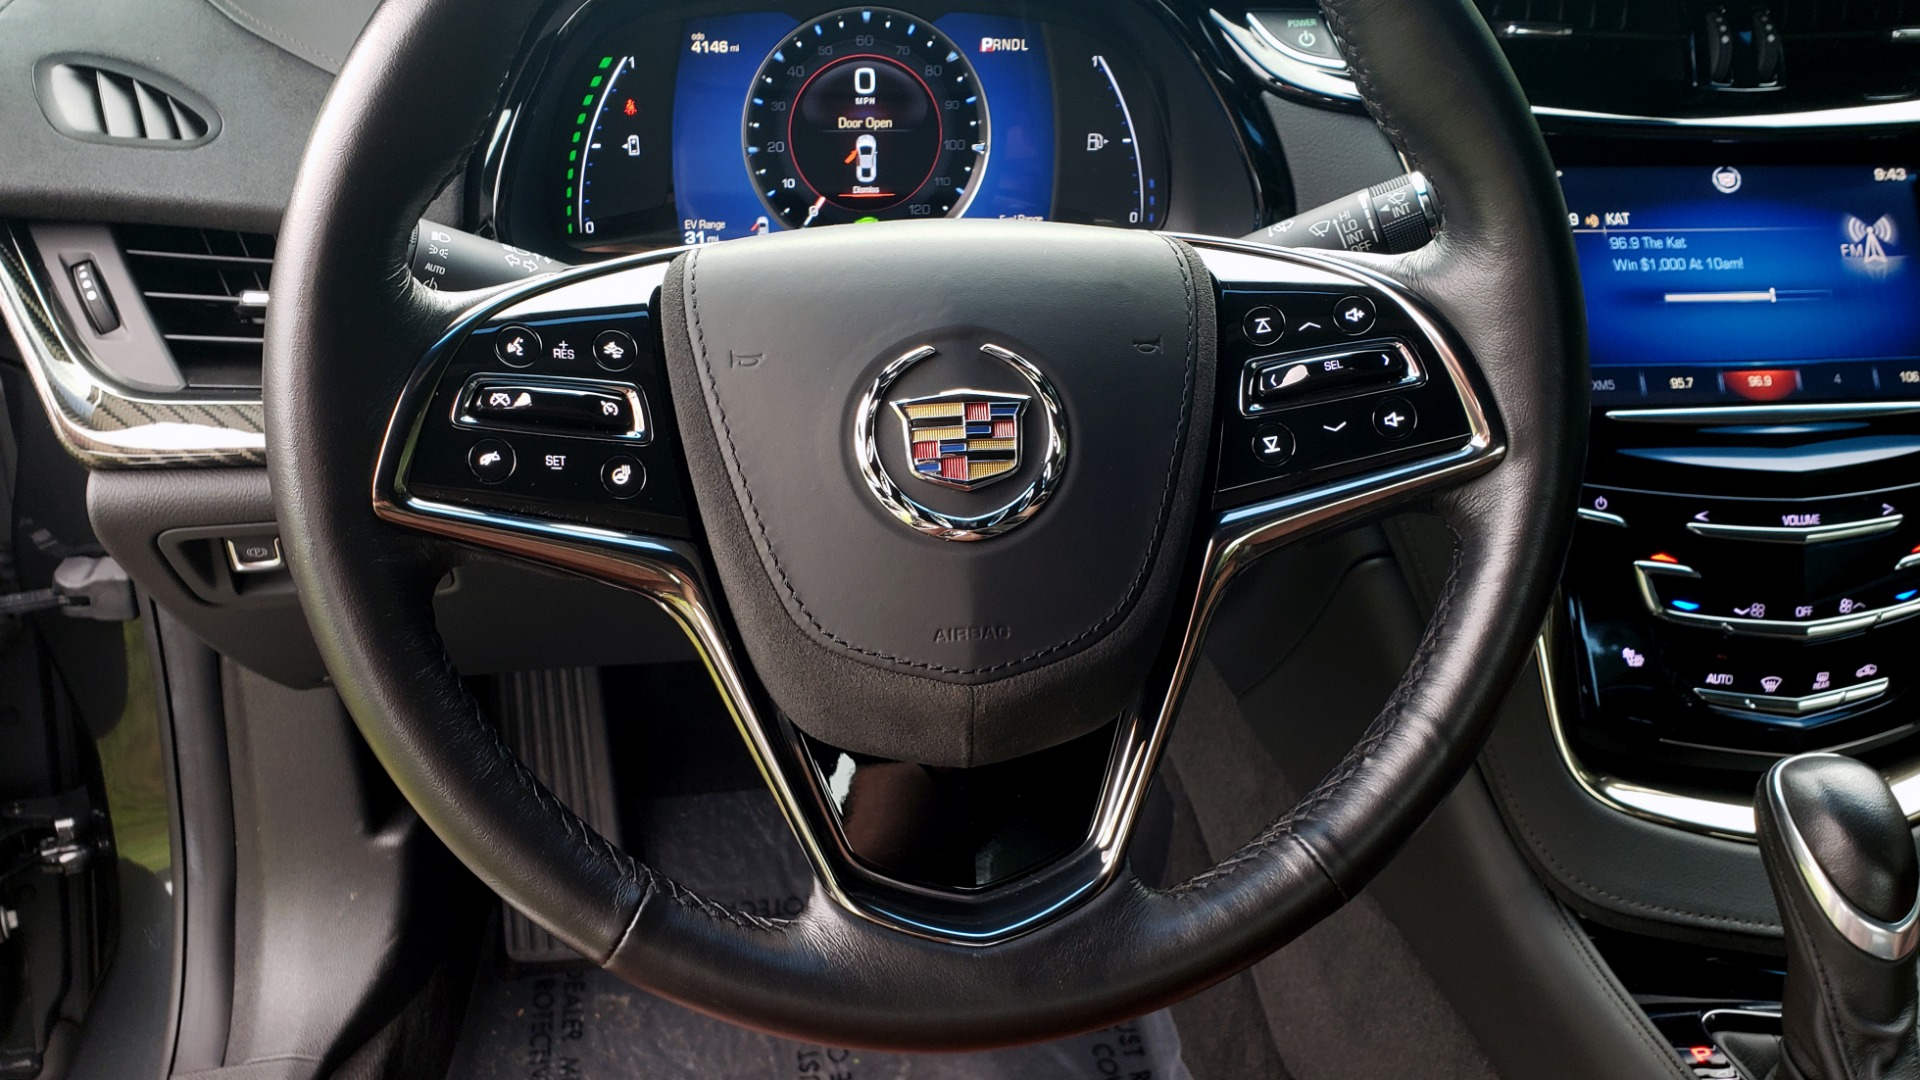 Used 2014 Cadillac ELR 2DR COUPE / HYBRID / NAV / BOSE / HEATED SEATS / REARVIEW for sale $34,000 at Formula Imports in Charlotte NC 28227 33